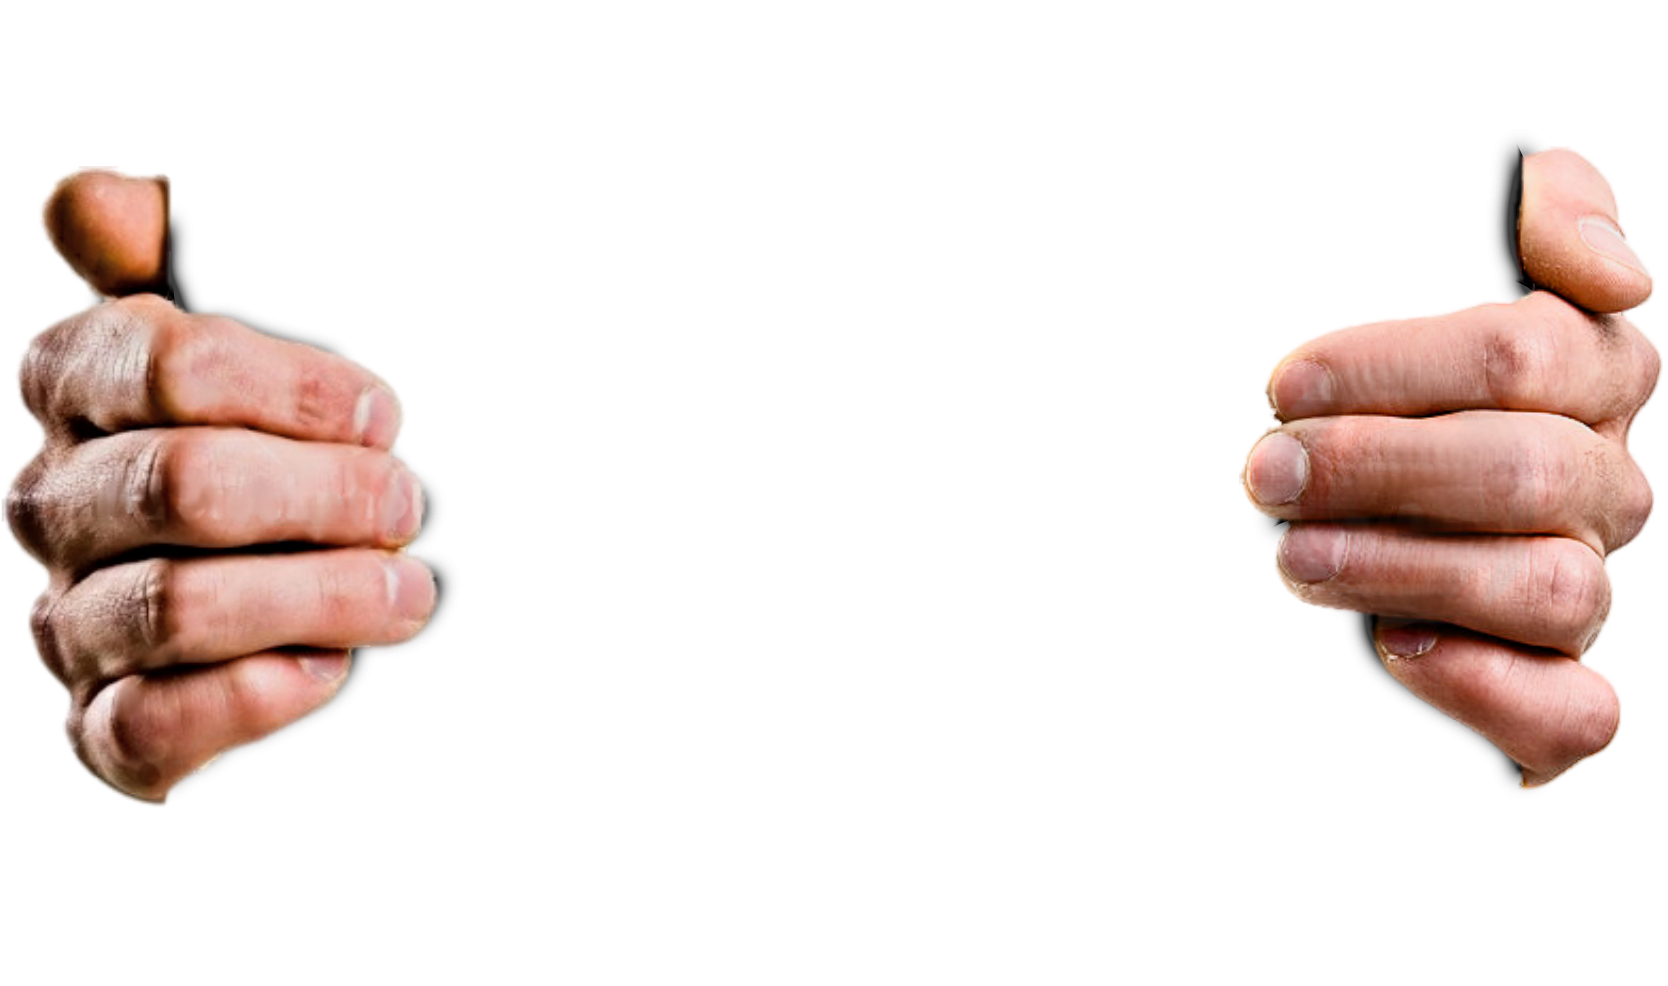 Hands holding sign png. Transparent images pluspng then